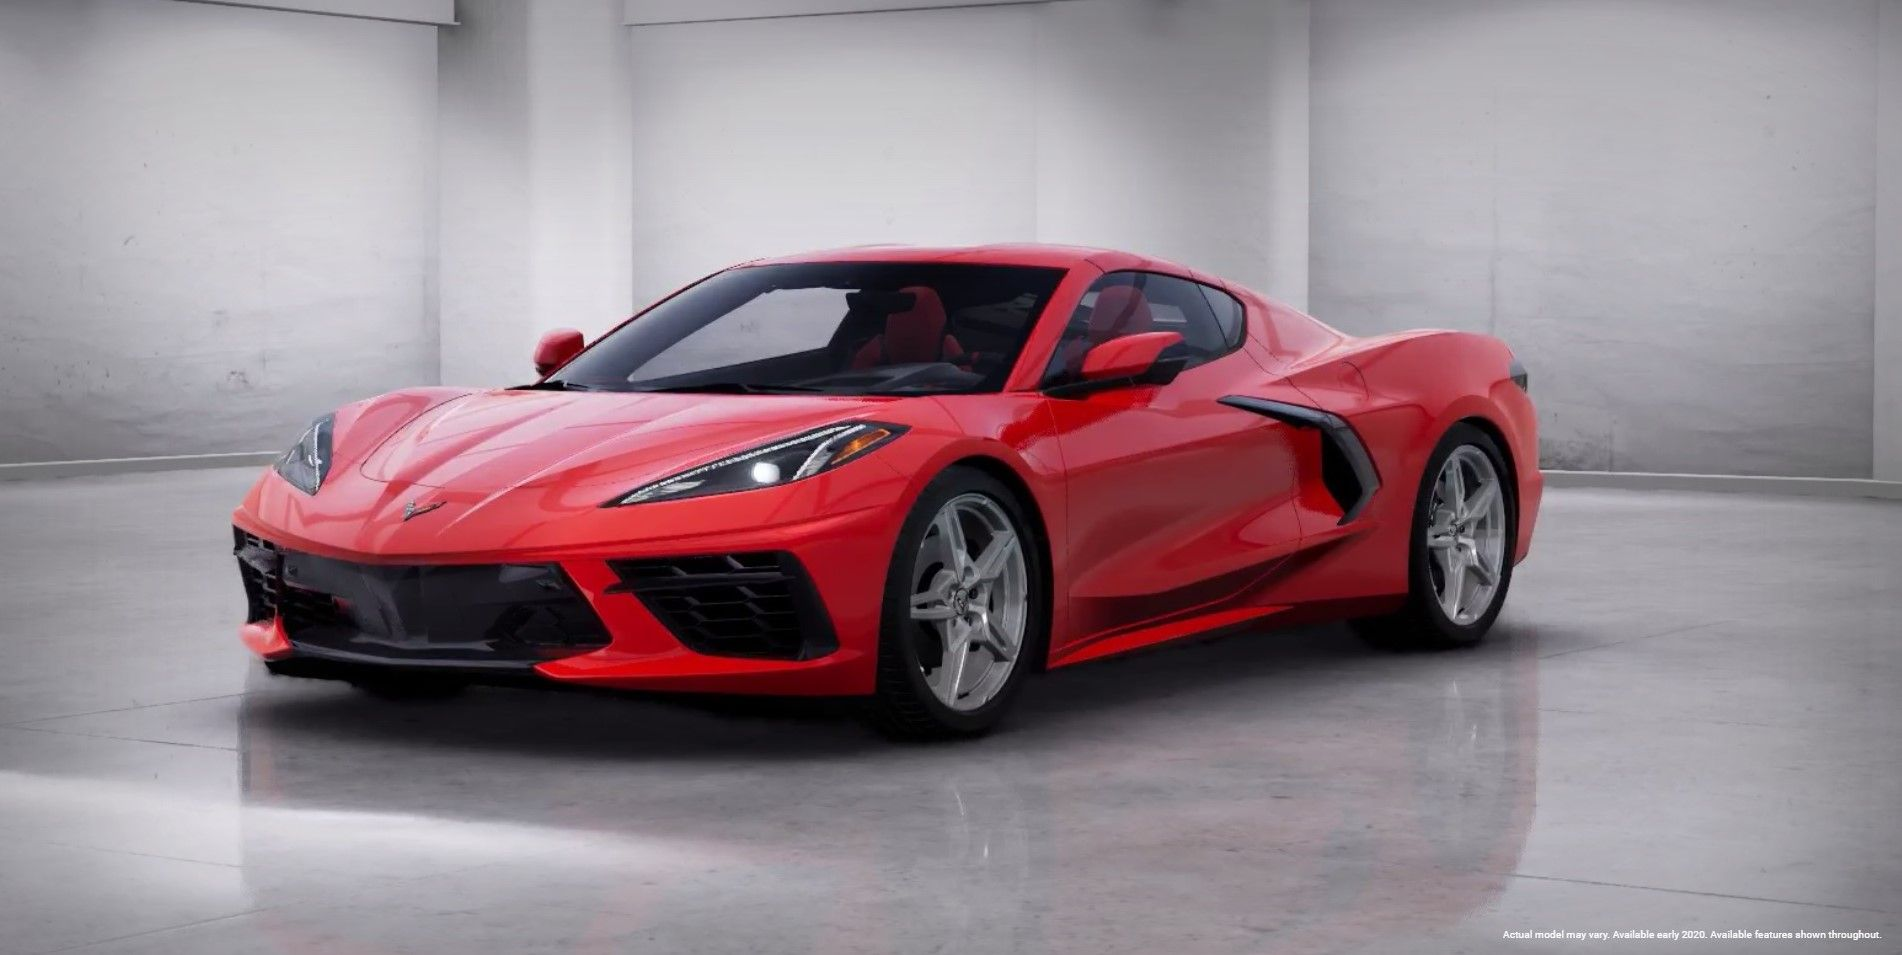 Chevrolet S Online Configurator For The 2020 Corvette C8 Stingray Is An Exercise In Patience Top Speed Chevrolet Corvette Corvette Convertible